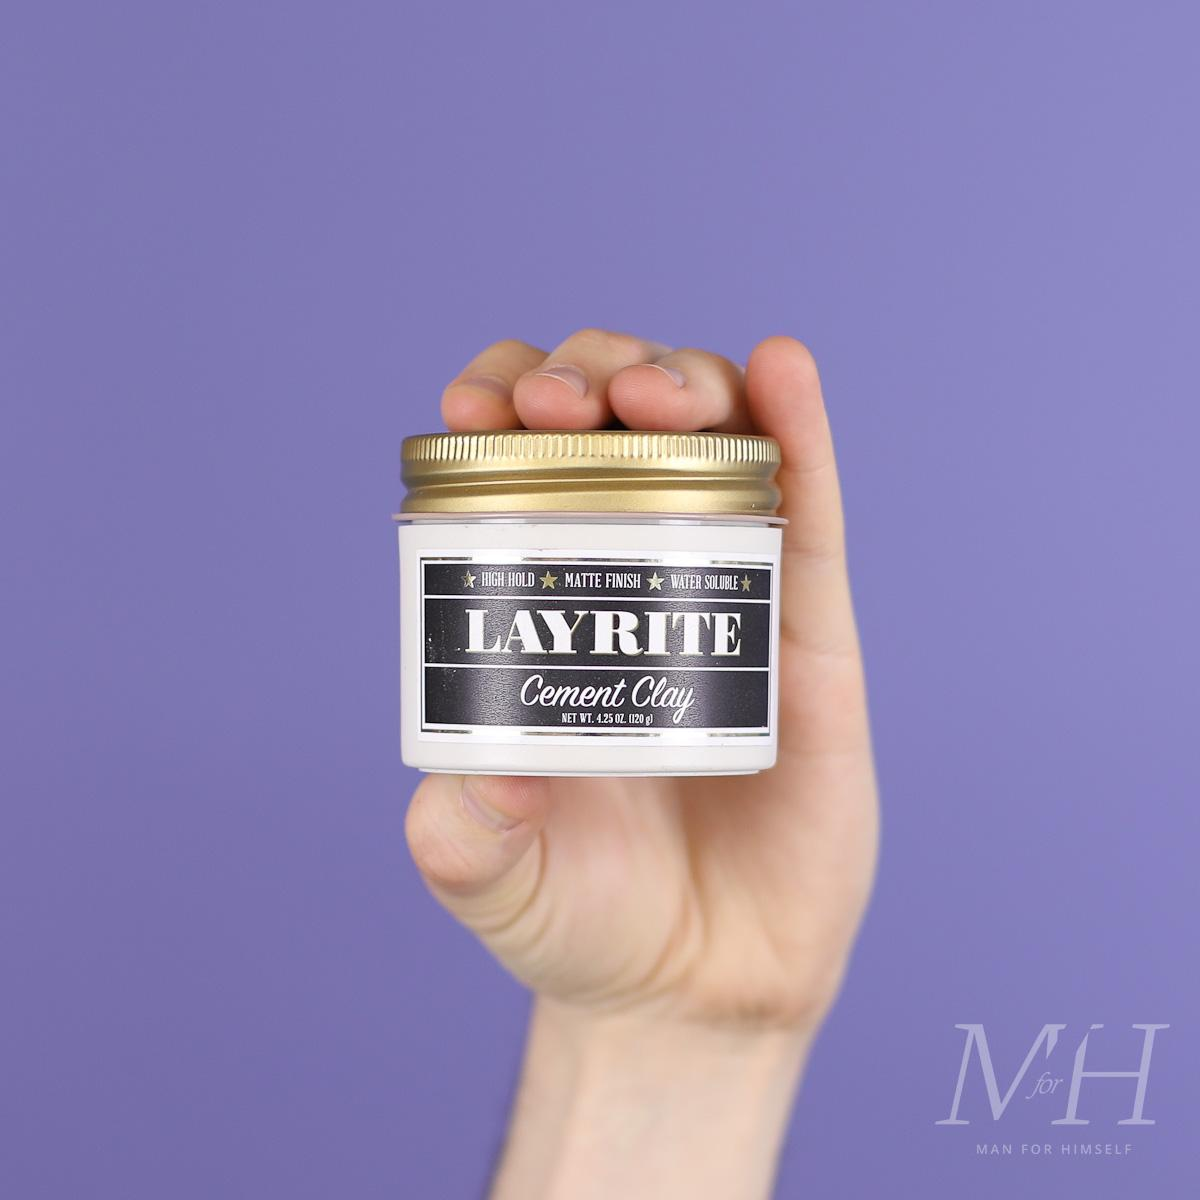 layrite-cement-clay-product-review-man-for-himself